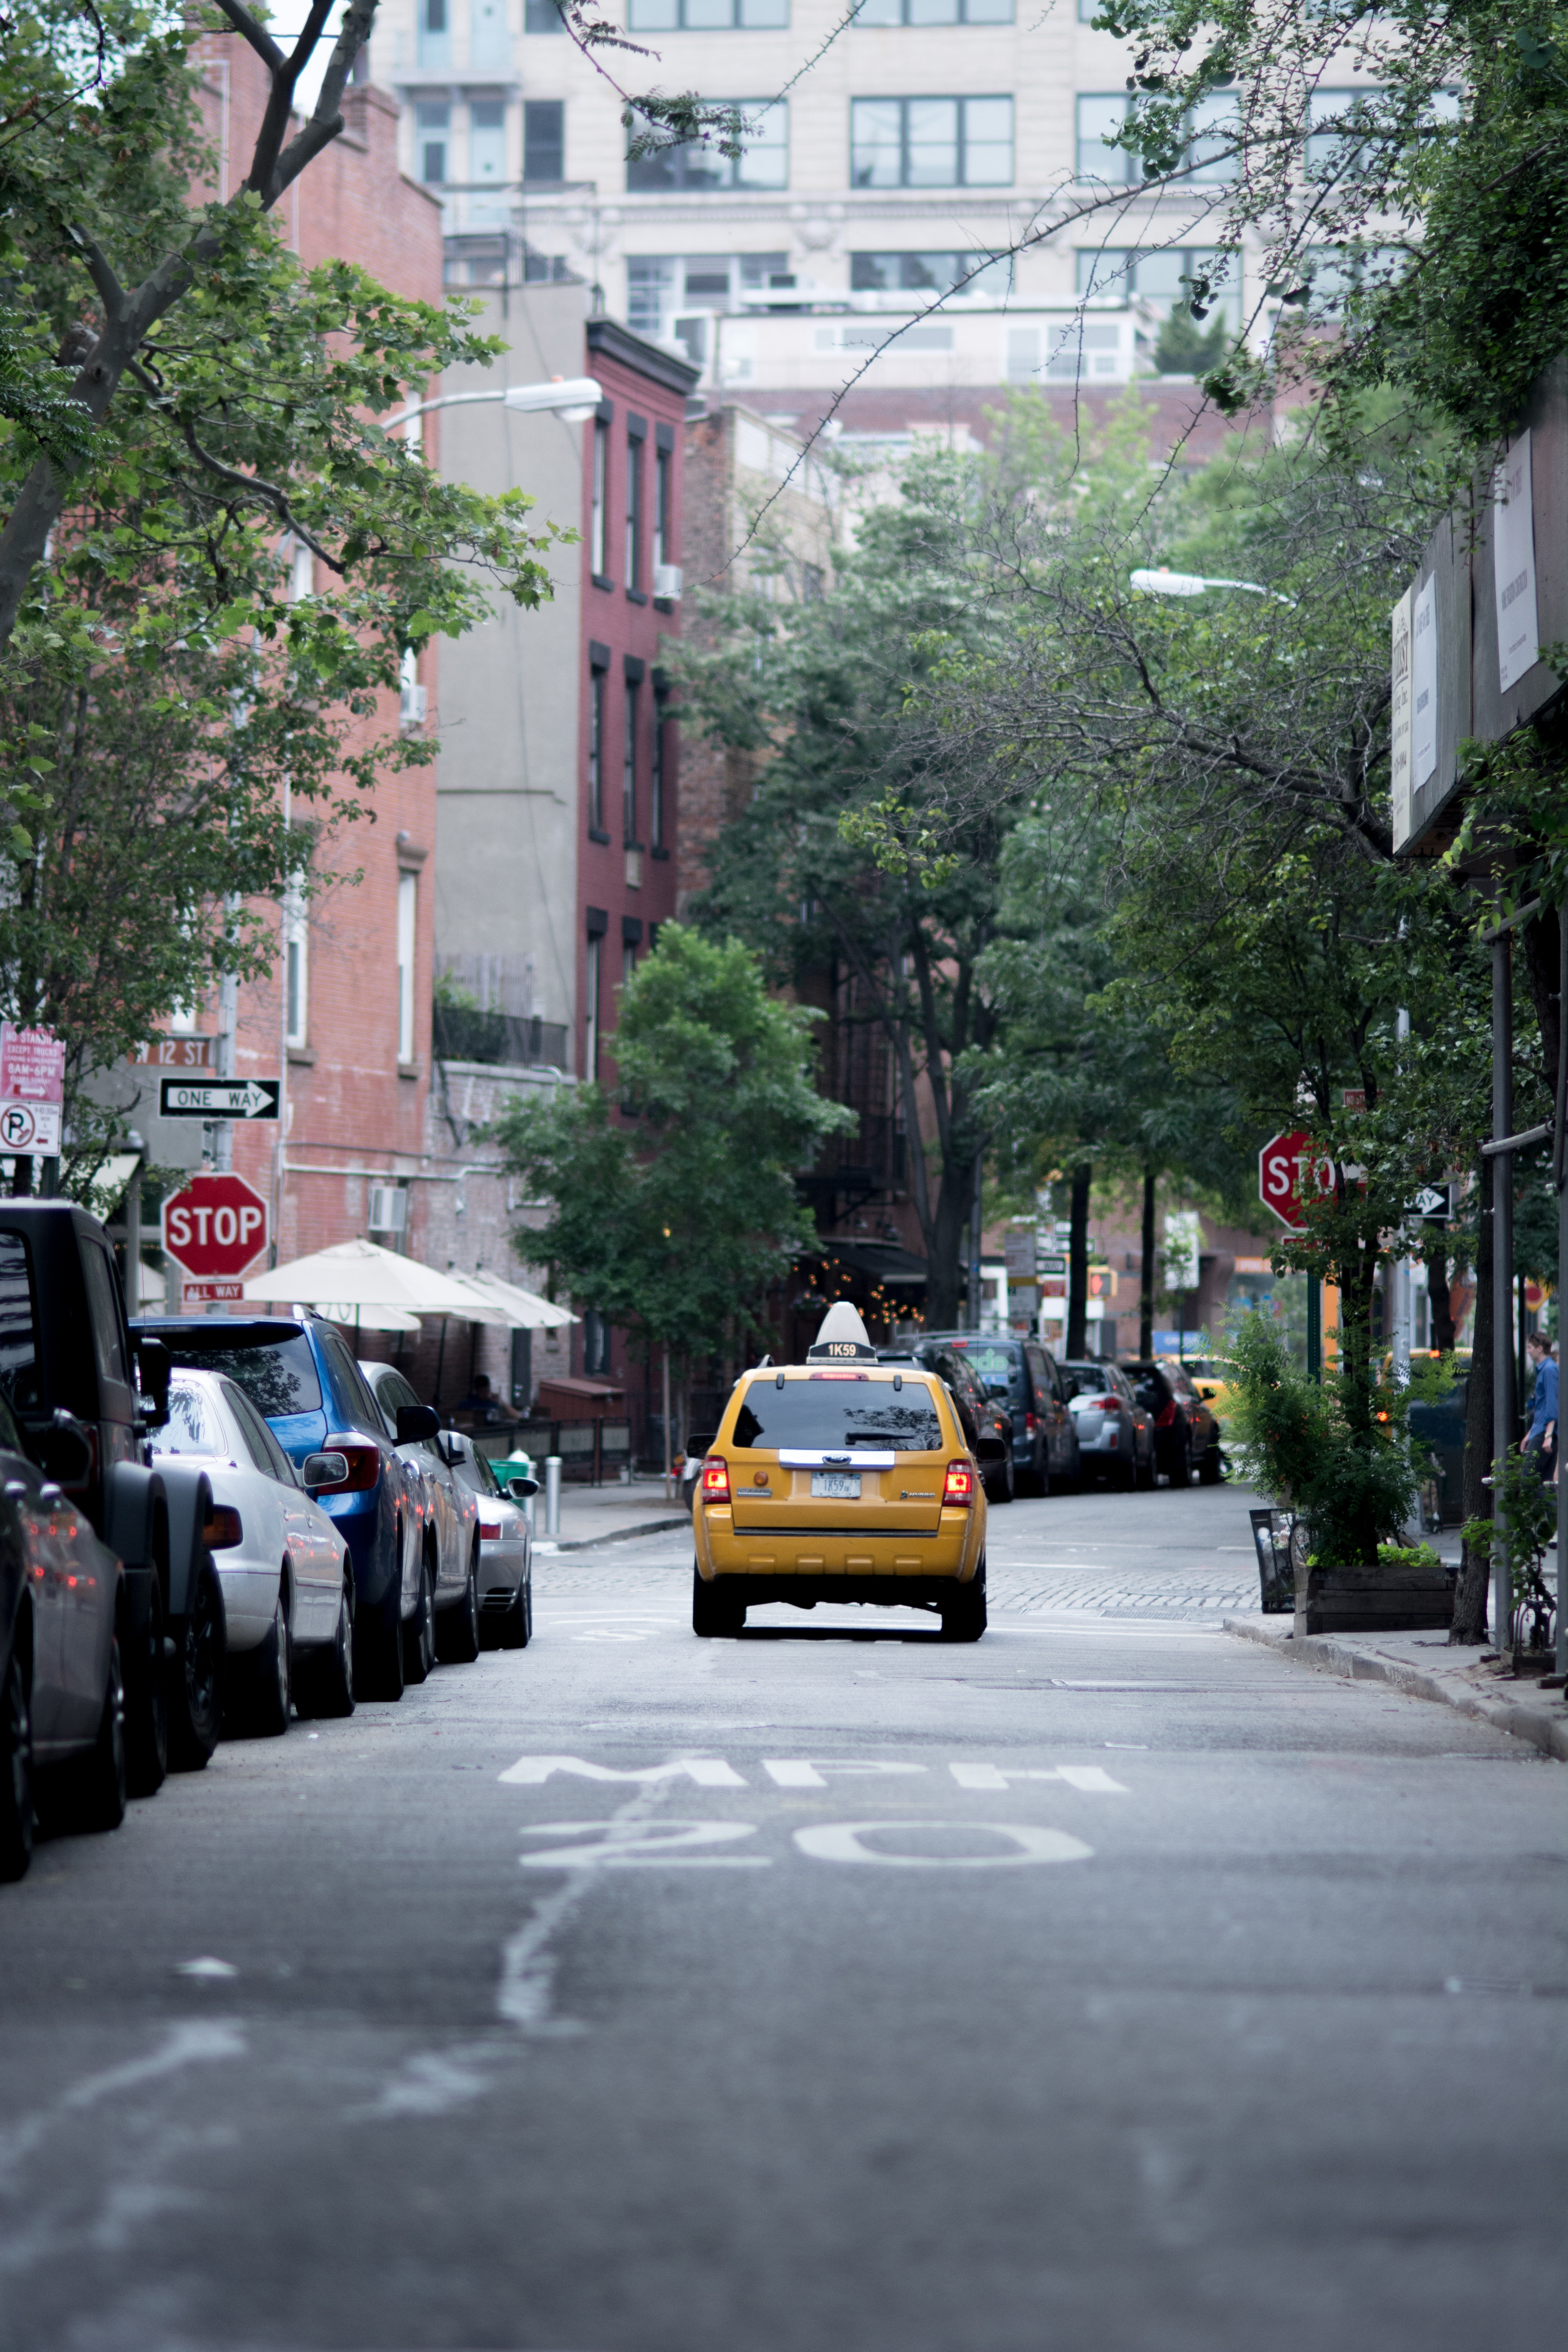 A yellow taxi cab in front of a stop sign on a New York side street